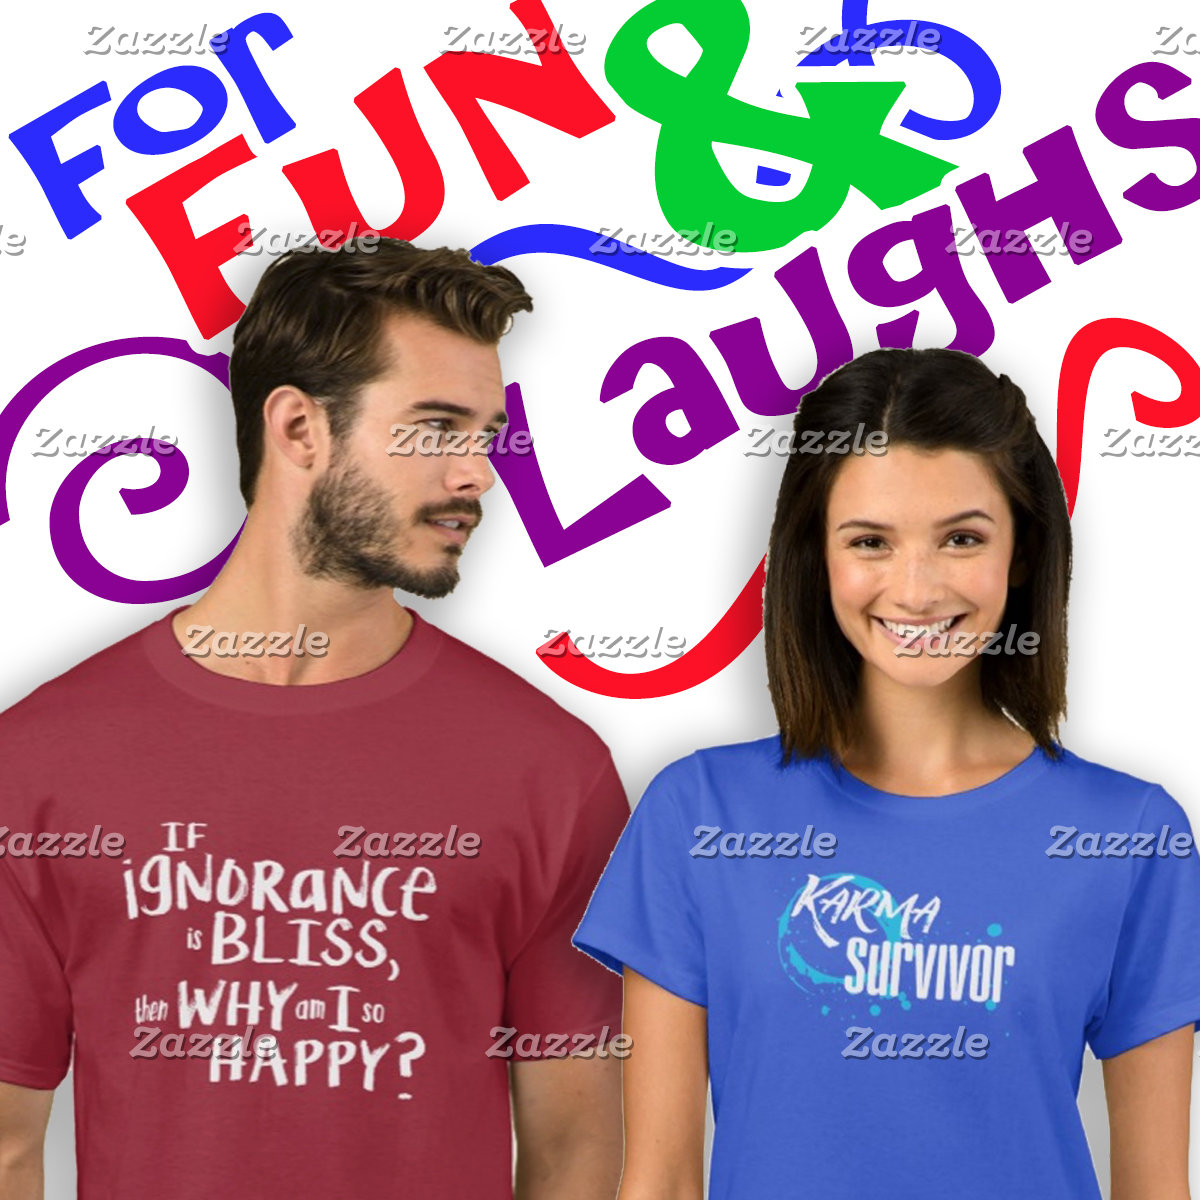 For Fun & Laughs